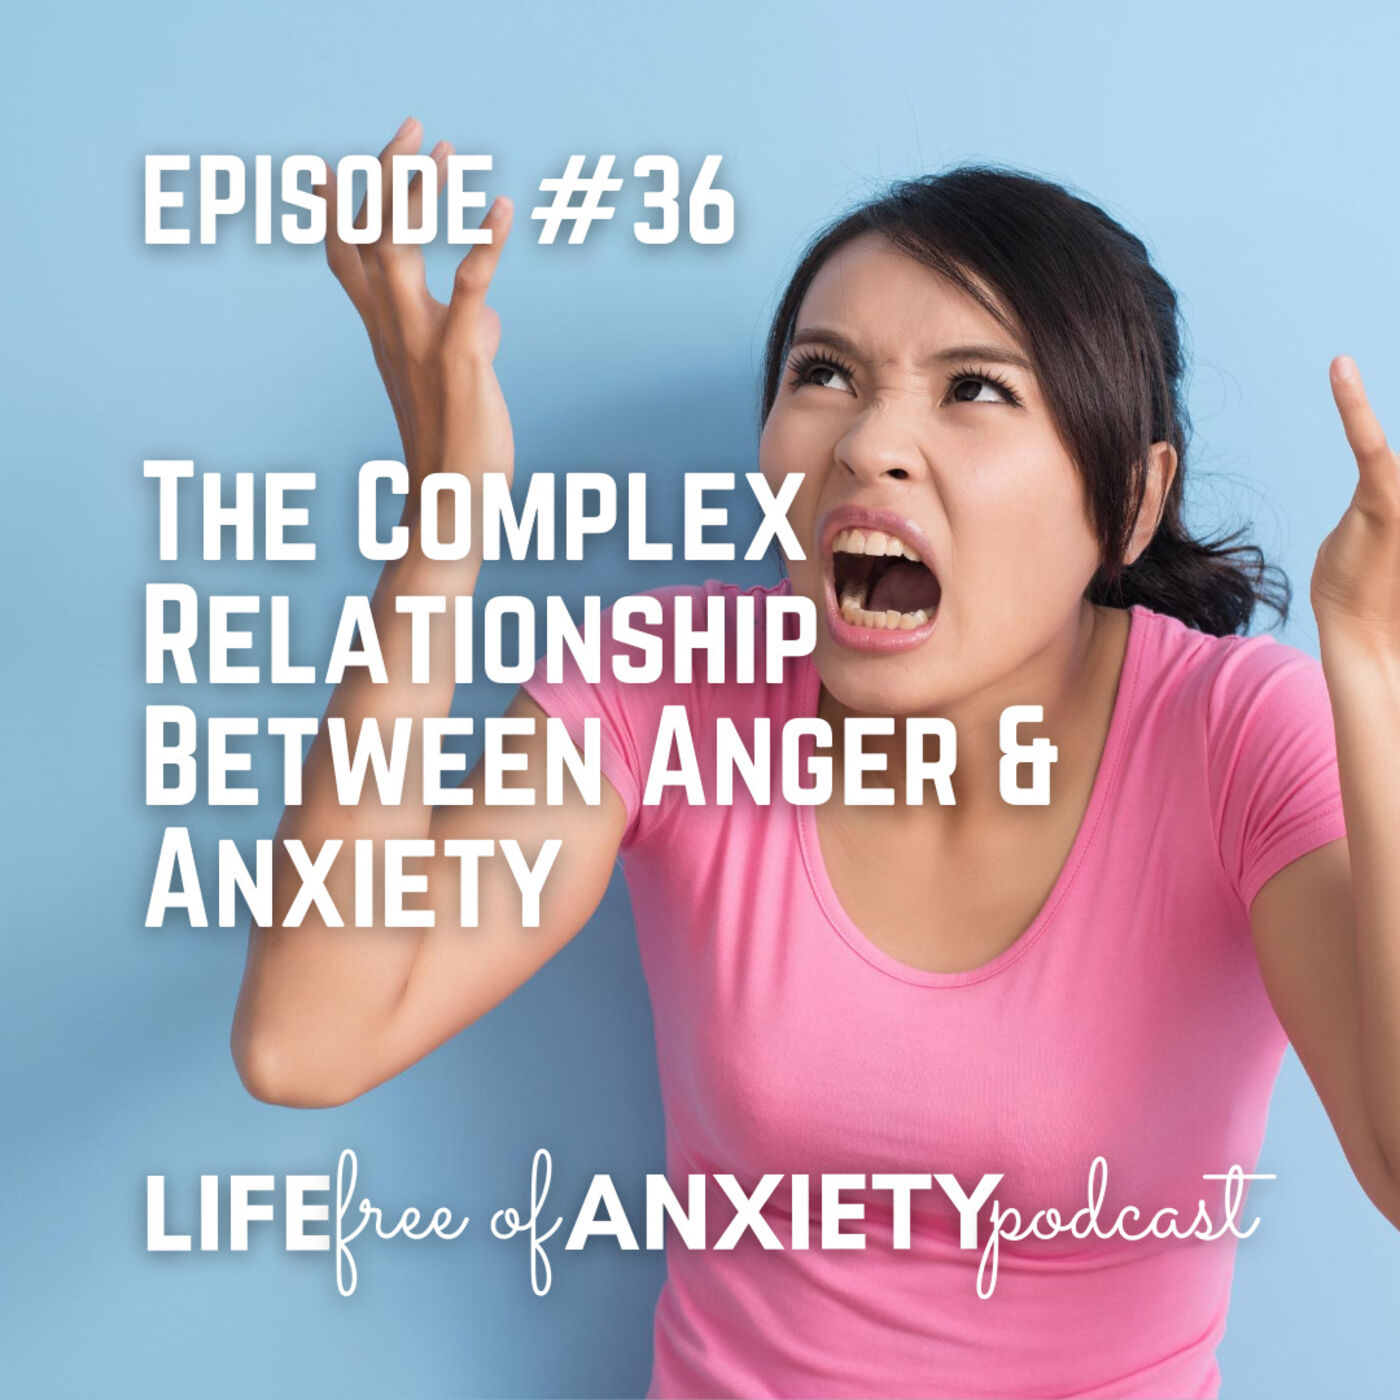 36-The Complex Relationship between Anger & Anxiety